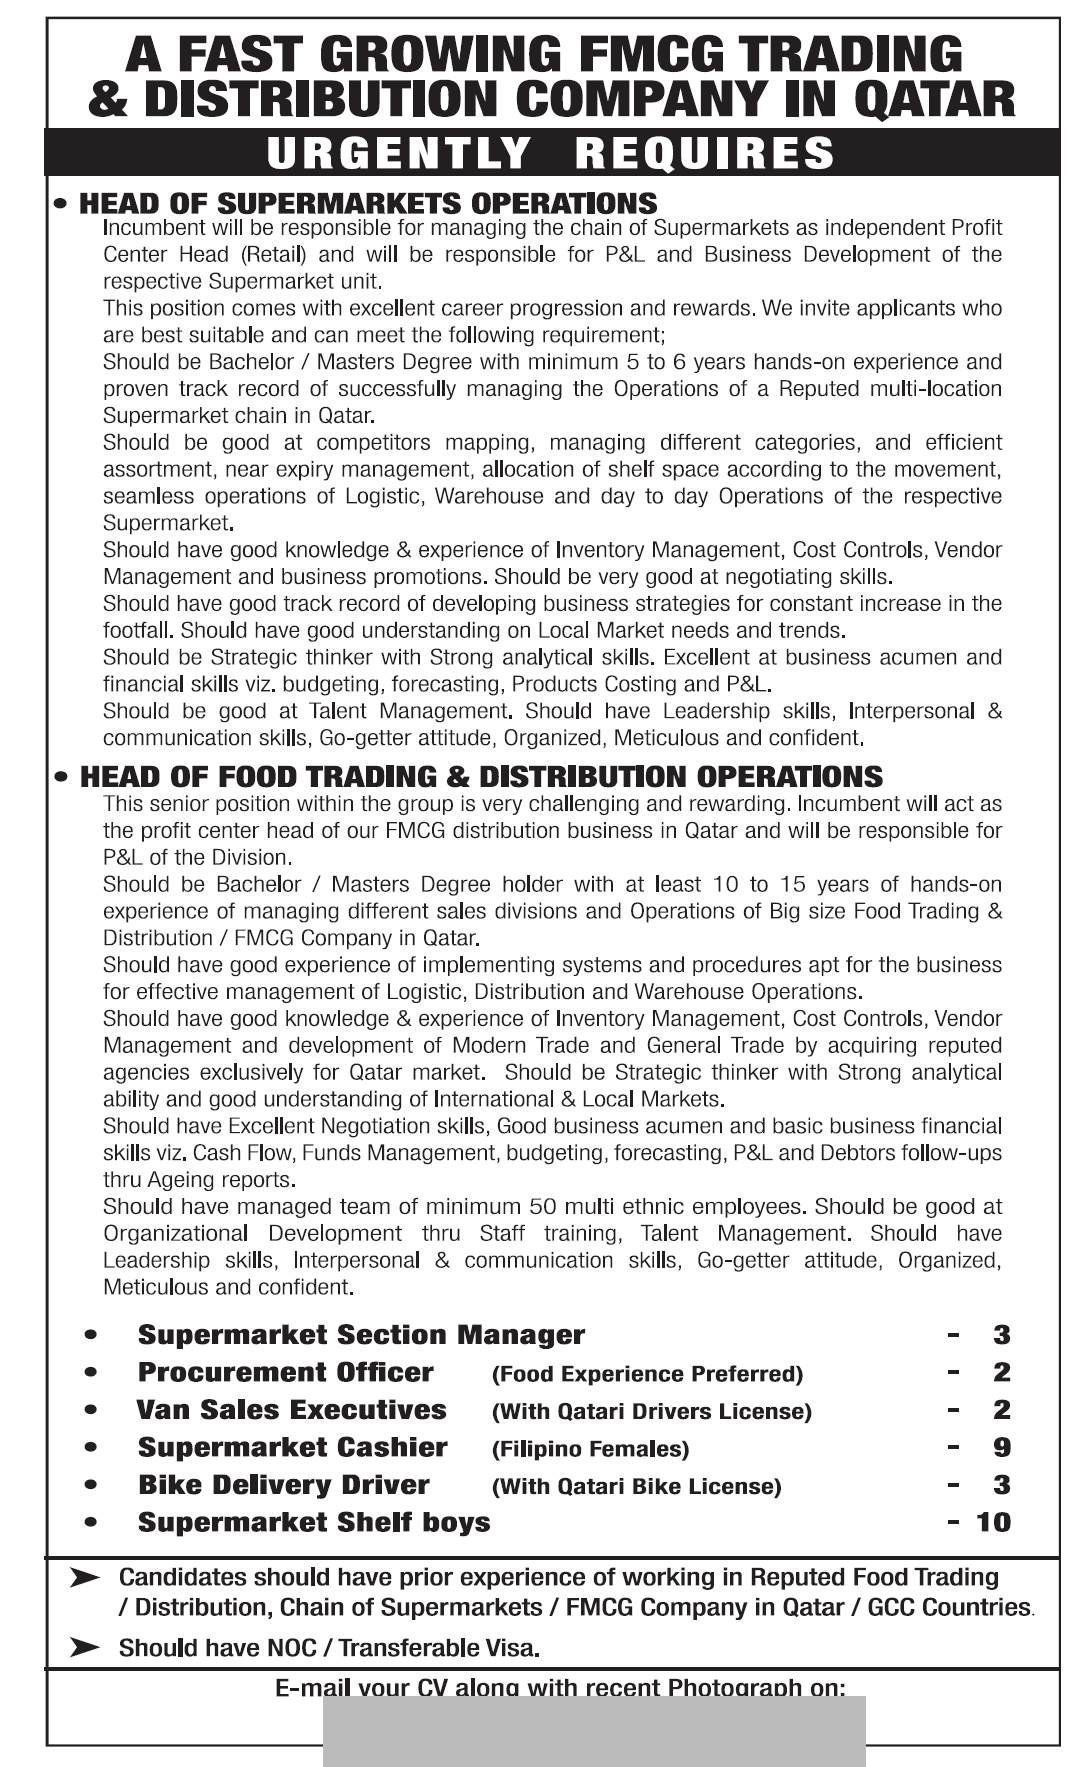 for a Fast Growing FMCG Trading &Distribution Company - Job Vacancy